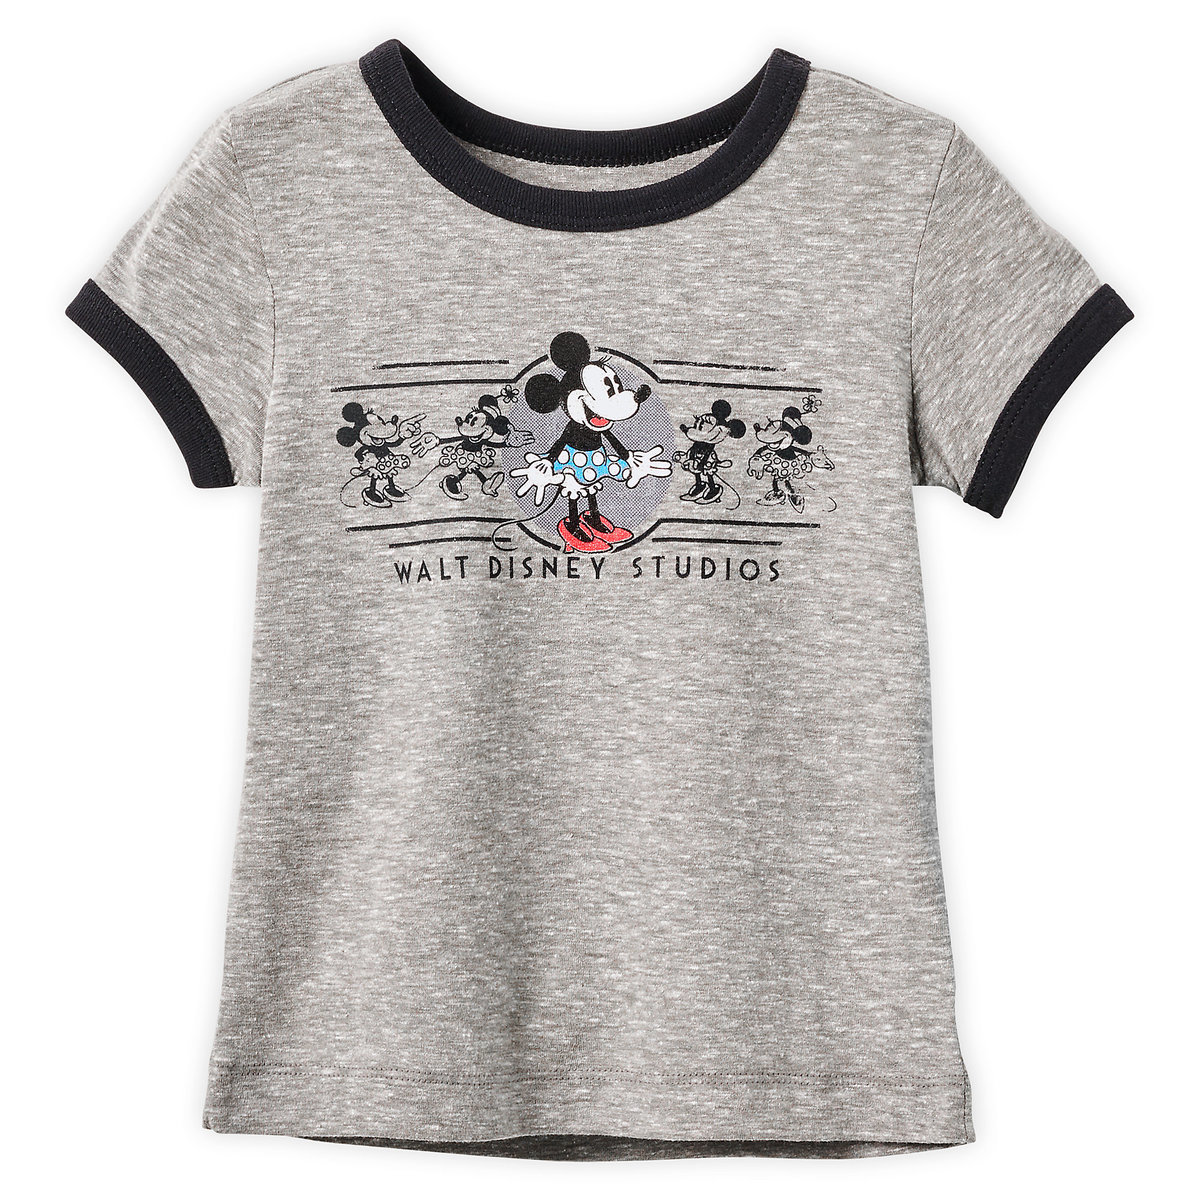 42fff9a0d617 Product Image of Minnie Mouse Ringer T-Shirt for Girls - Walt Disney  Studios #